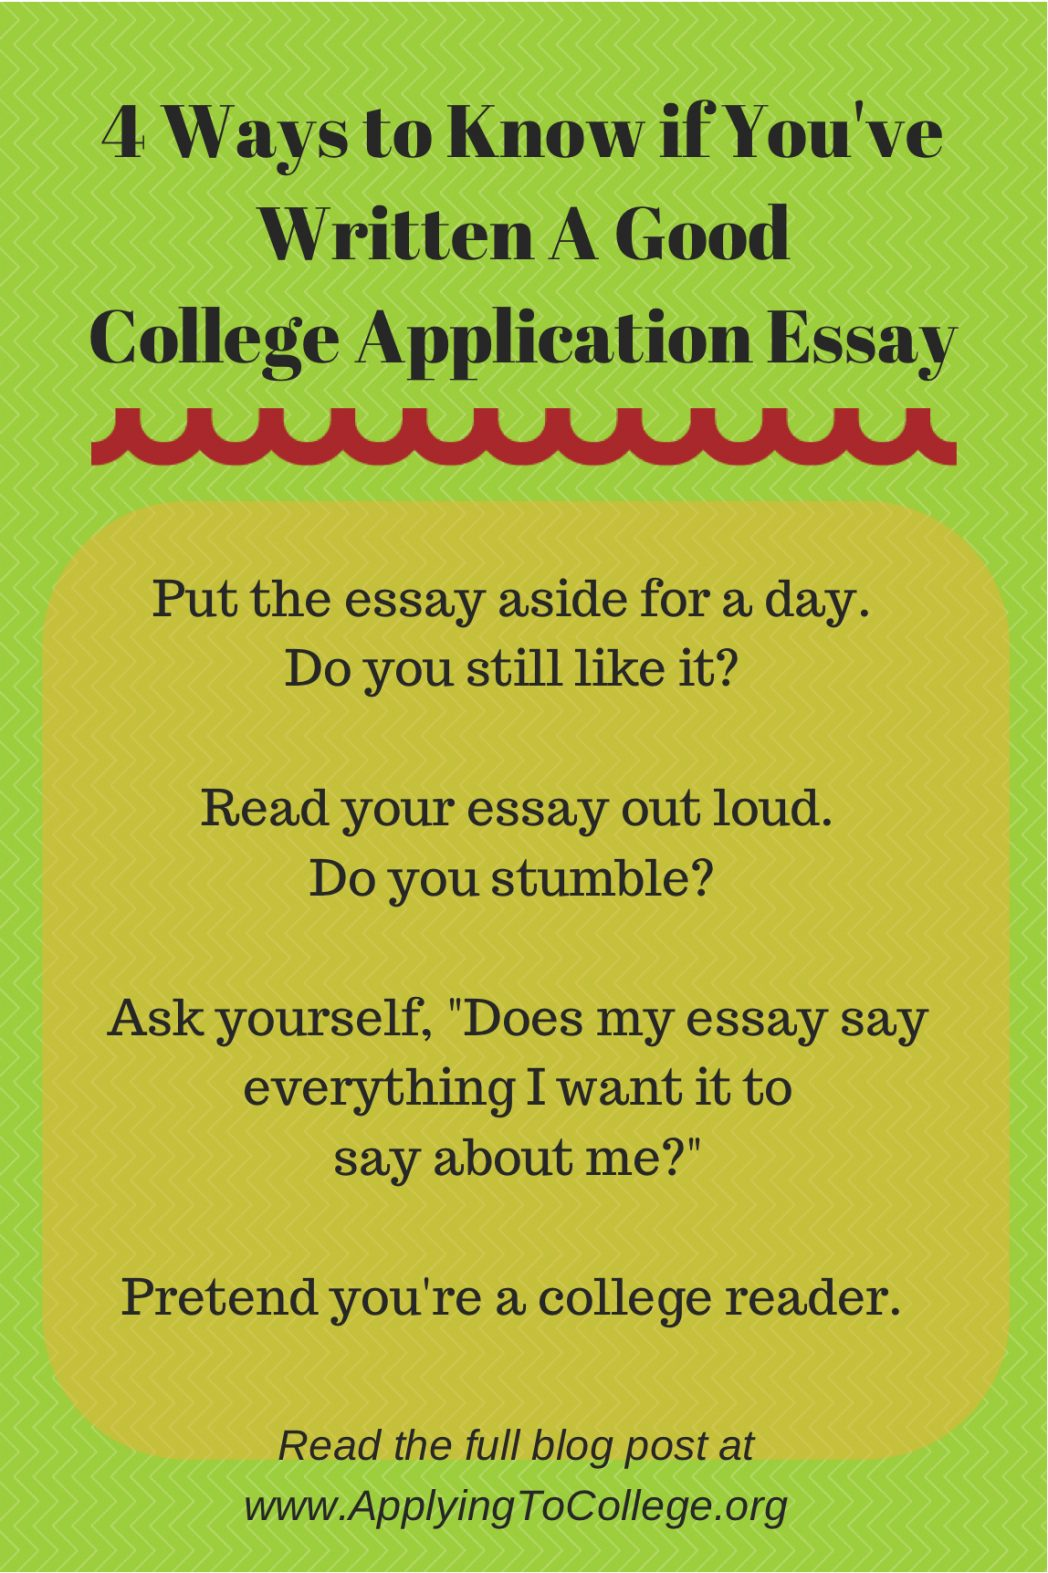 024 Write My Essay For Me Free Example Research Paper Comparative Literature 4ways To Know If Youve Written Online Uk Reviews Cheap Formidable College Full